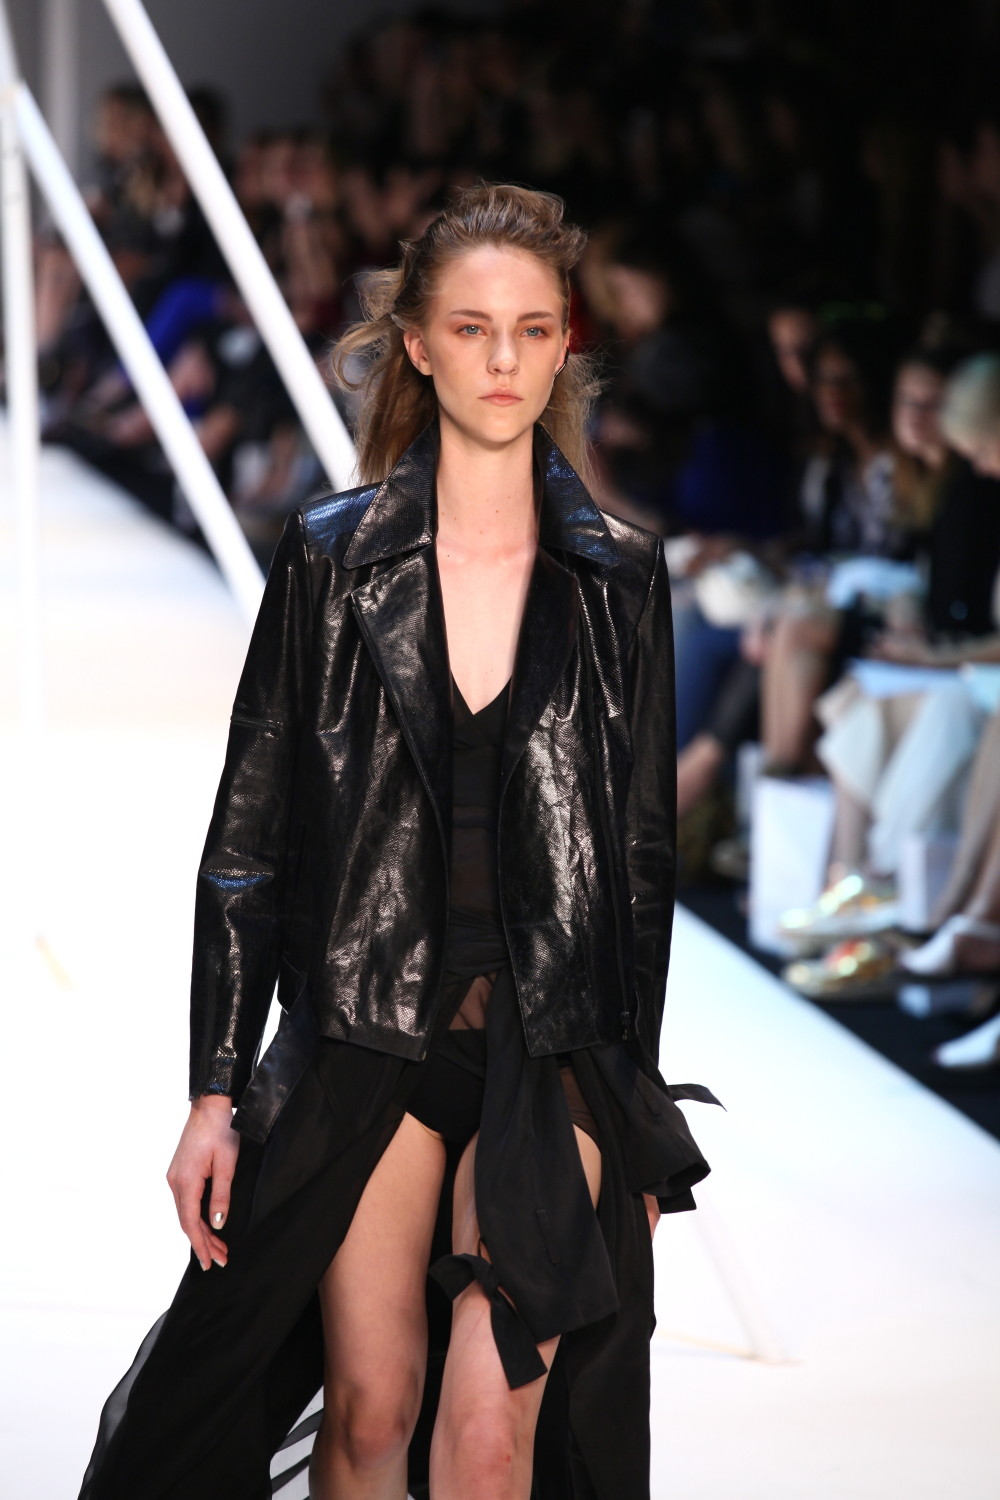 michael lo sordo spring summer MBFWA fashion week 2014